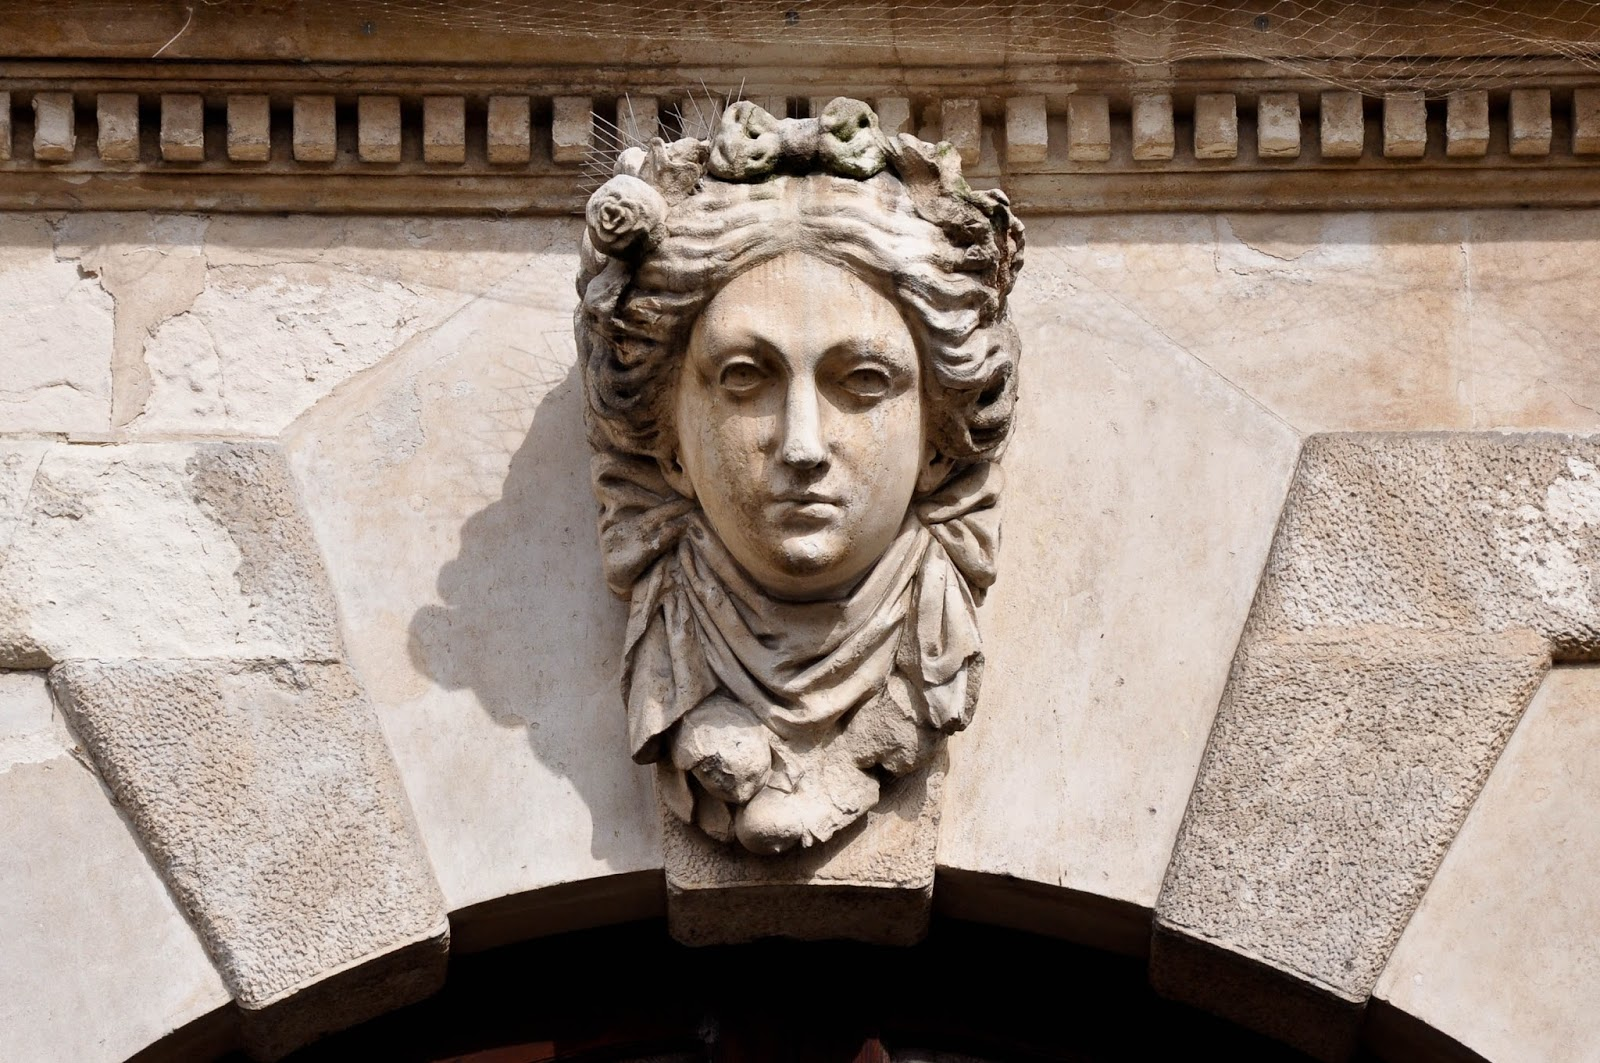 A female face on the facade of a building in Vicenza, Veneto, Italy